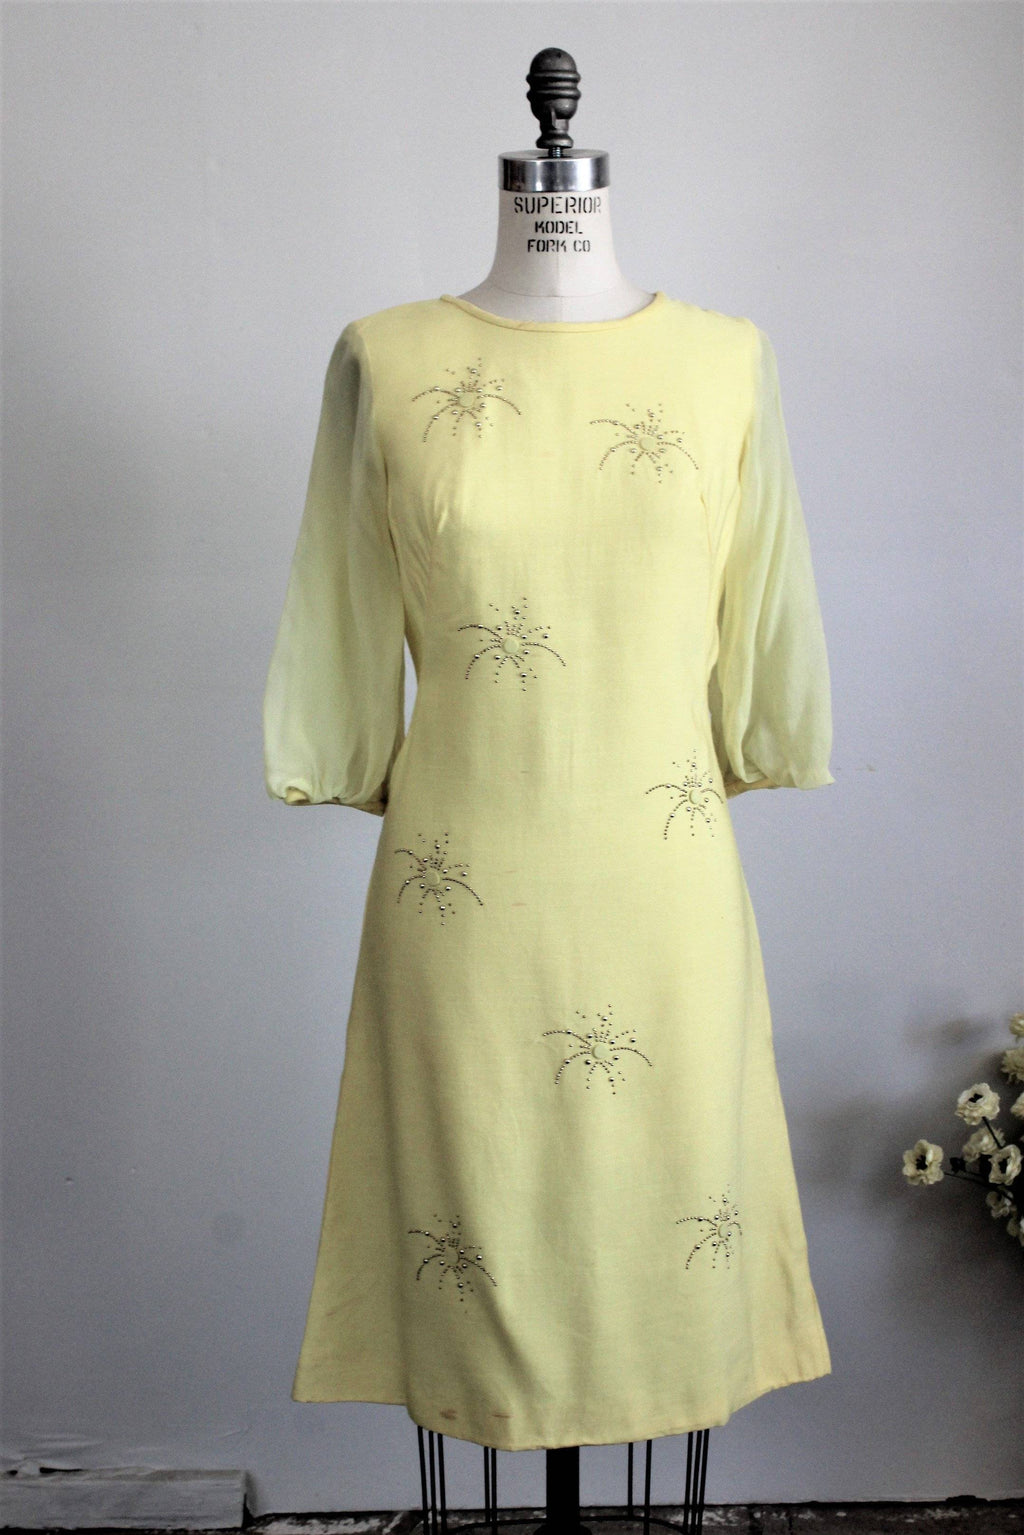 CLEARANCE: Vintage 1960s Yellow Mod Sheath Dress With Chiffon Sleeve and Starburst Beads